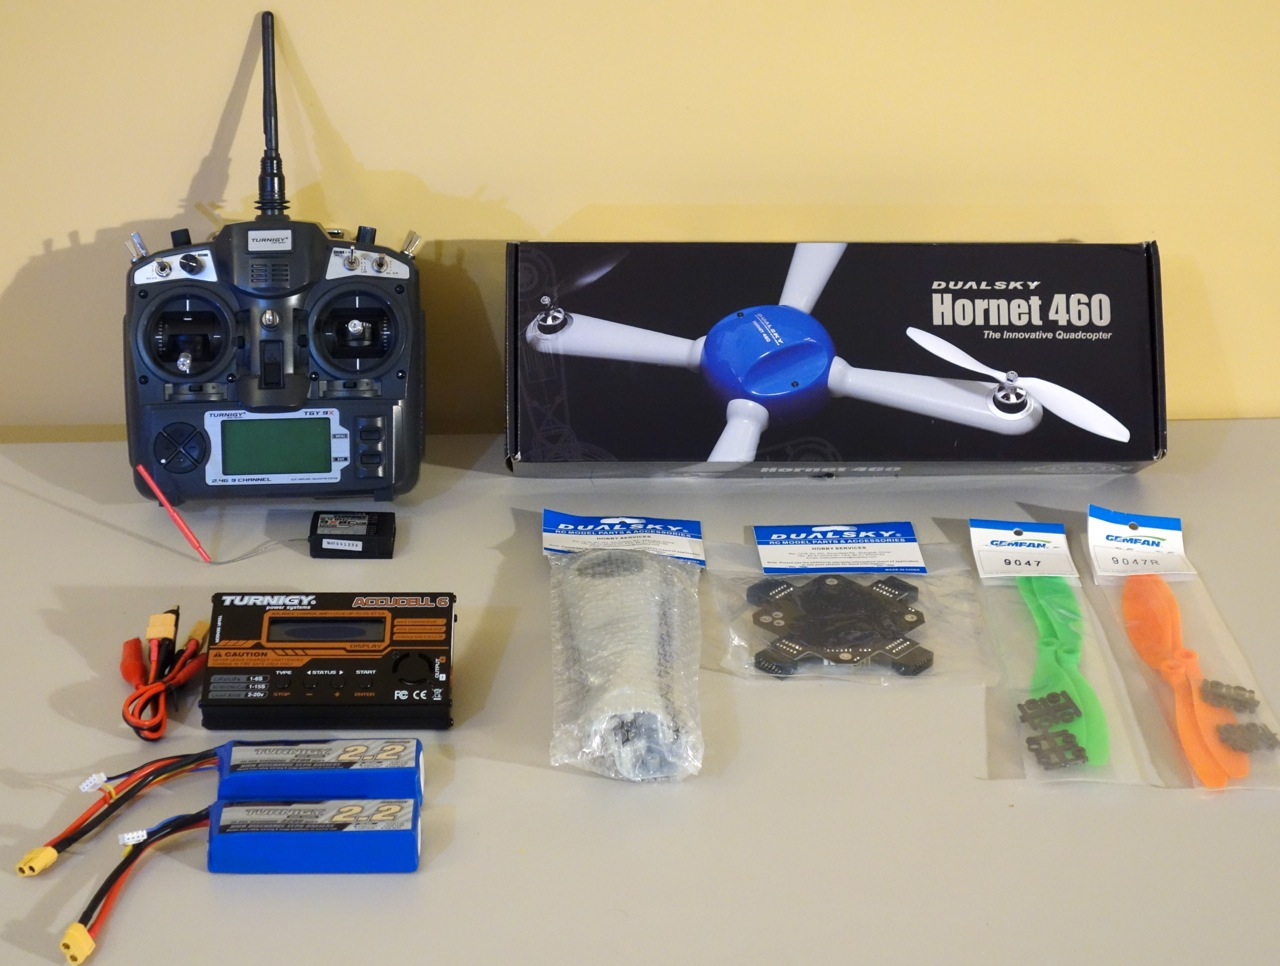 ar drone 2.0 instructions